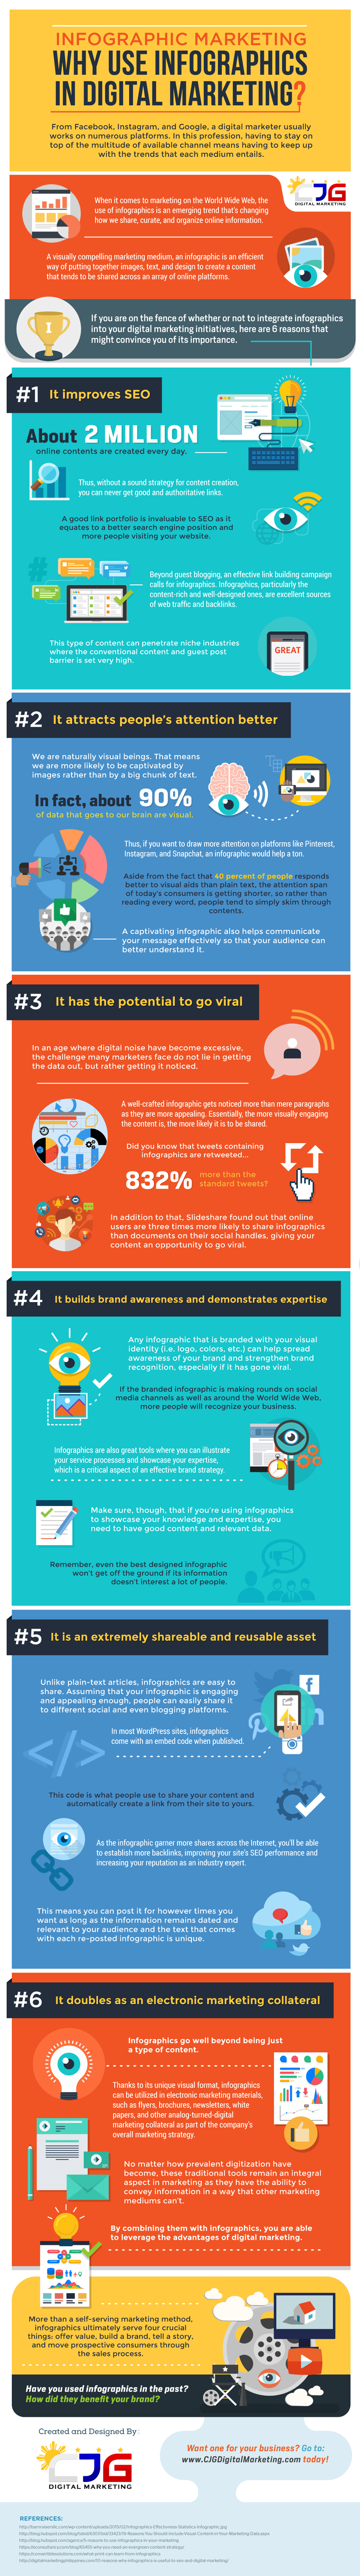 Why use infographics?